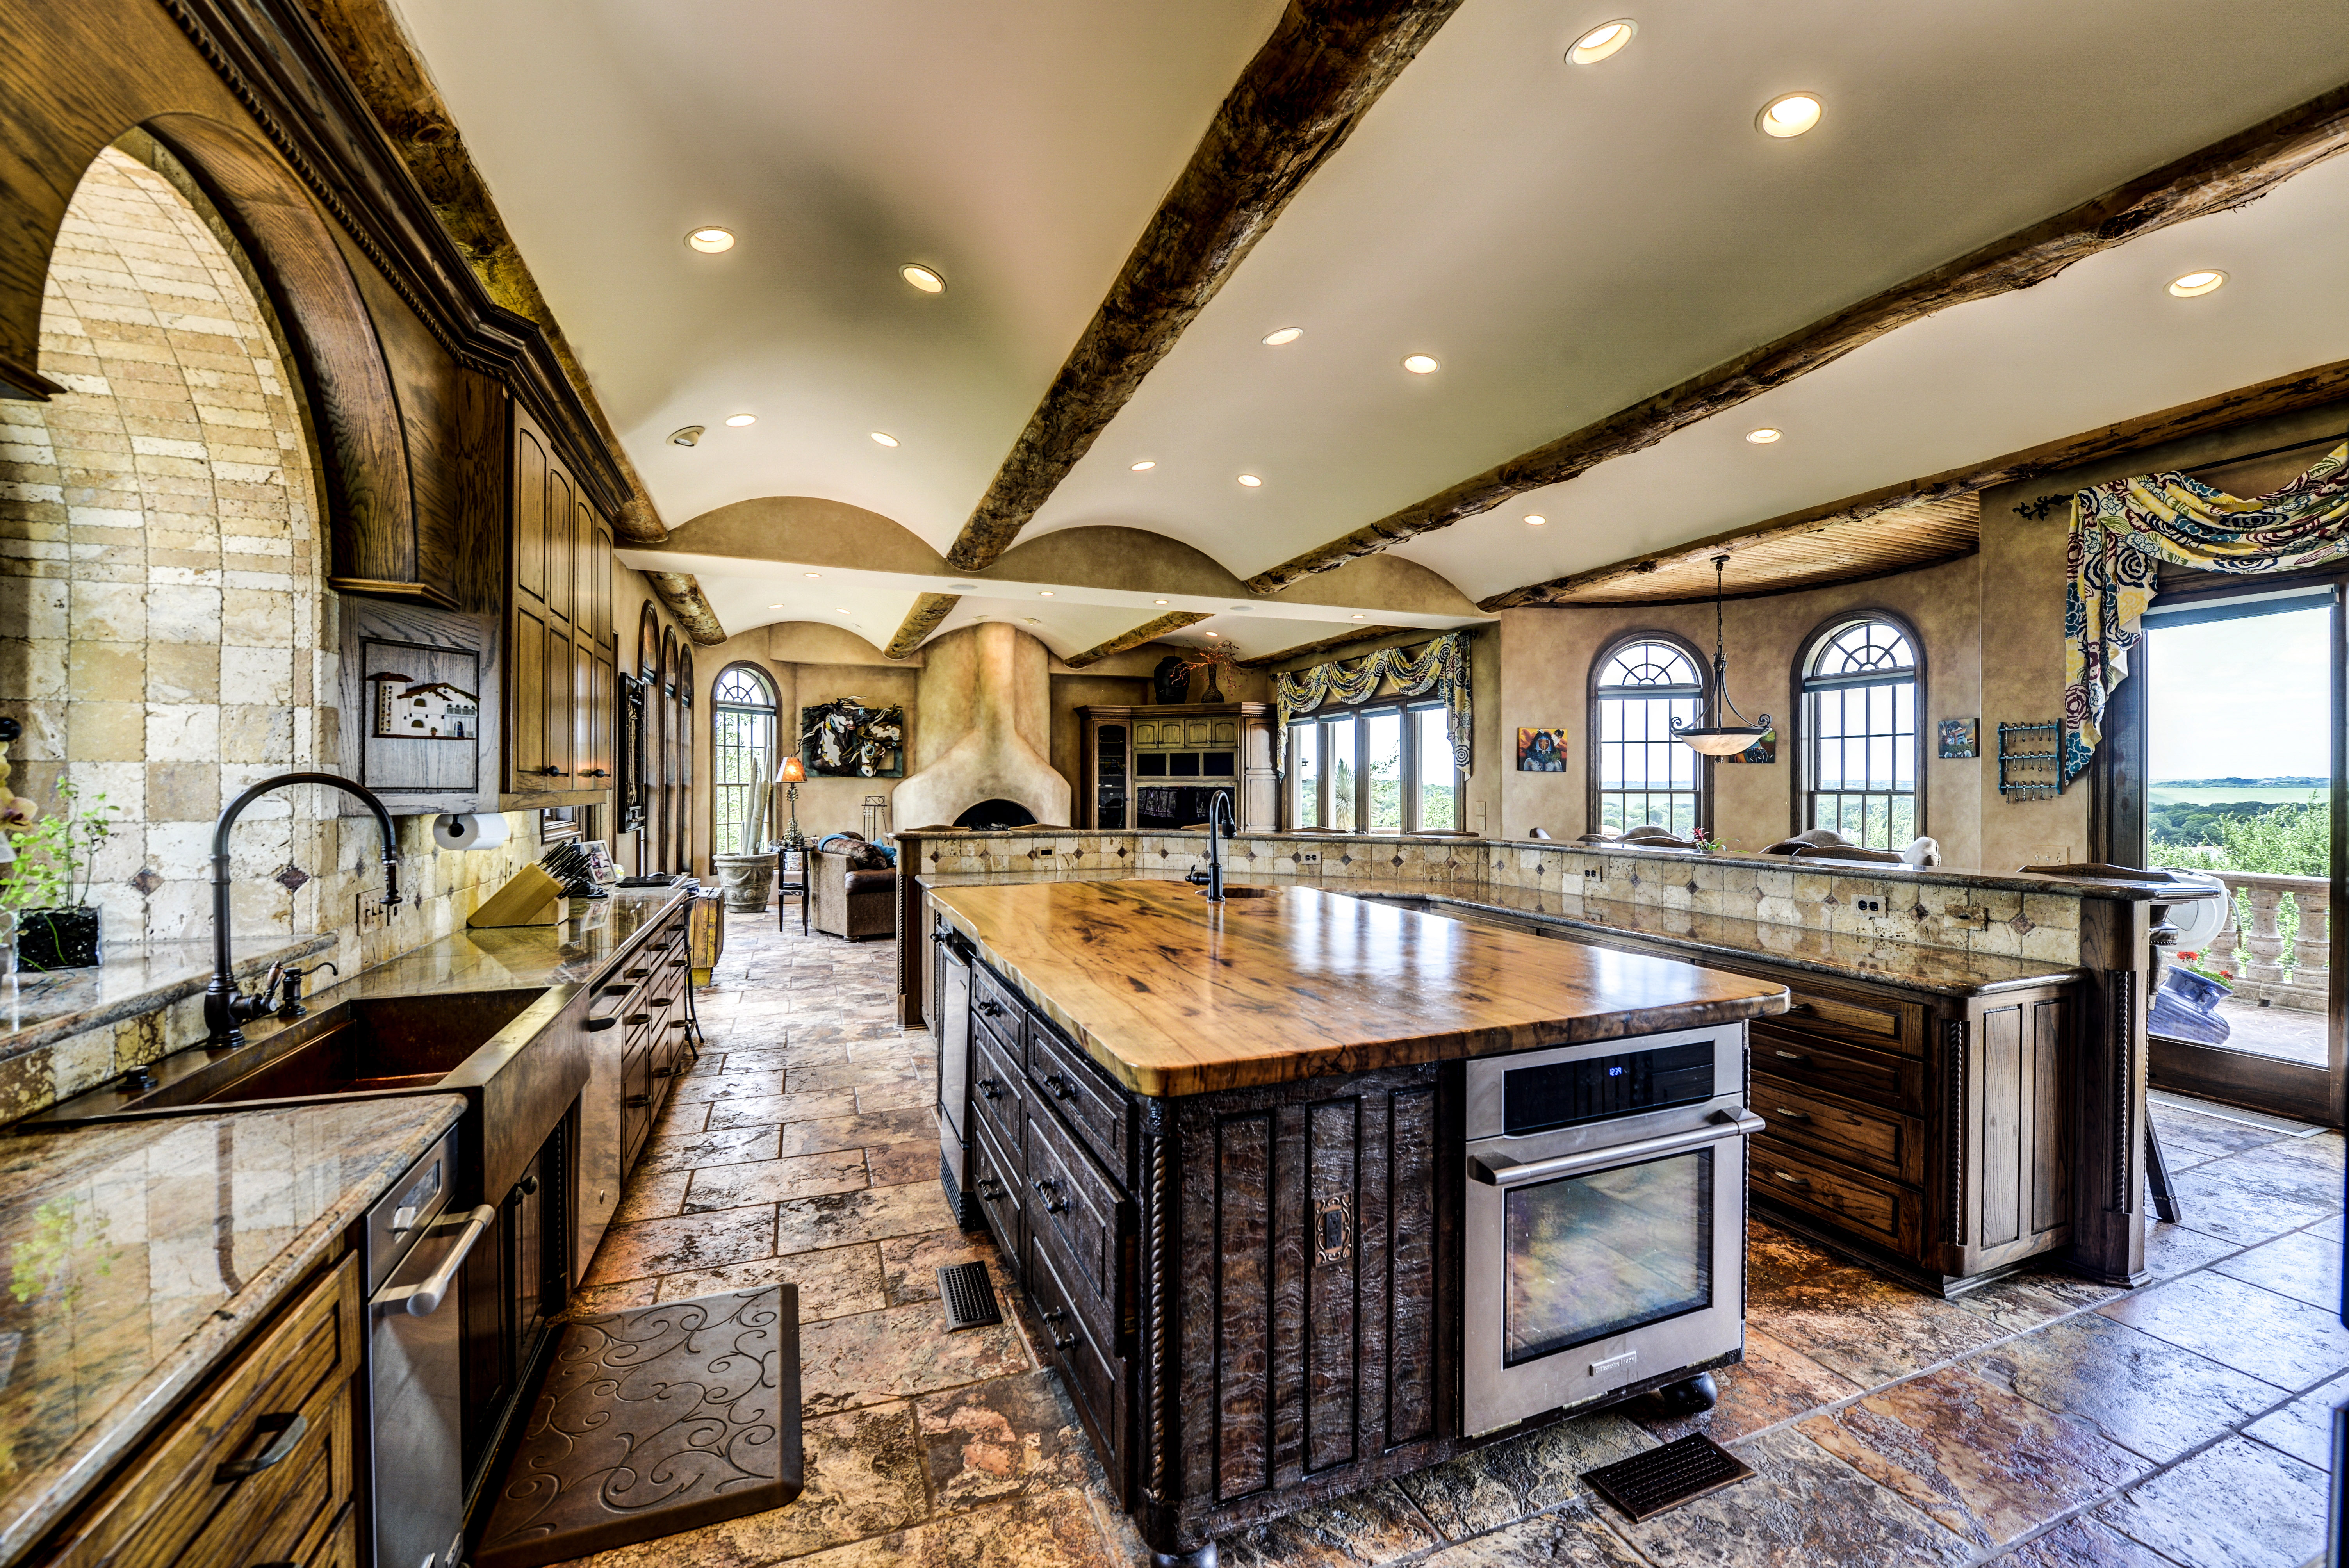 ... Luxury Homes DFW, Sells World Class Properties Ranches, Ultimate Luxury  Real Estate For Sale...Magnificent Properties For Sale!   FORT WORTH The ...